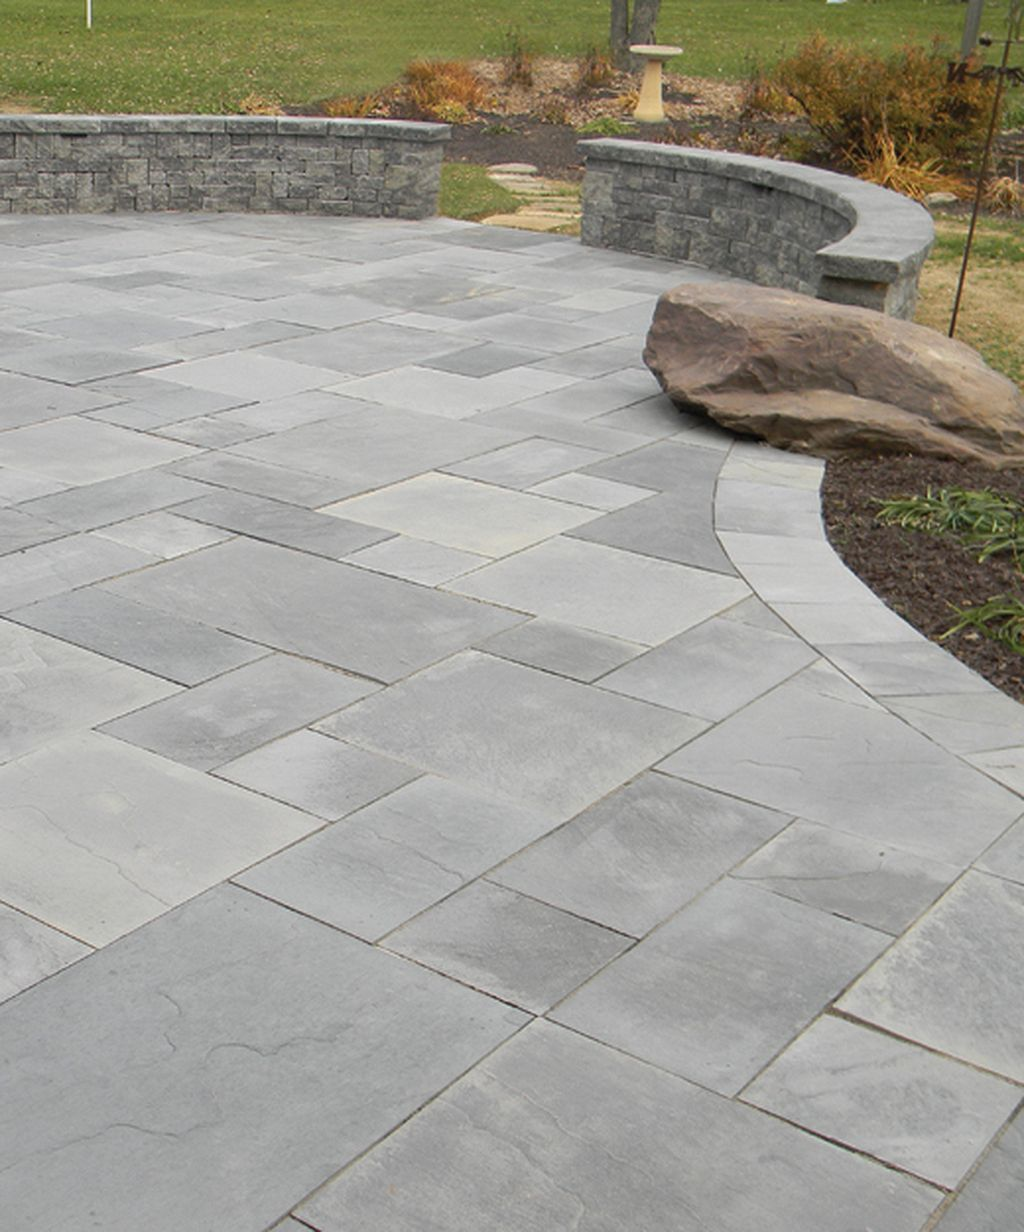 How To Lay A Paver Patio Gravel Sand And Stones Stone Patio